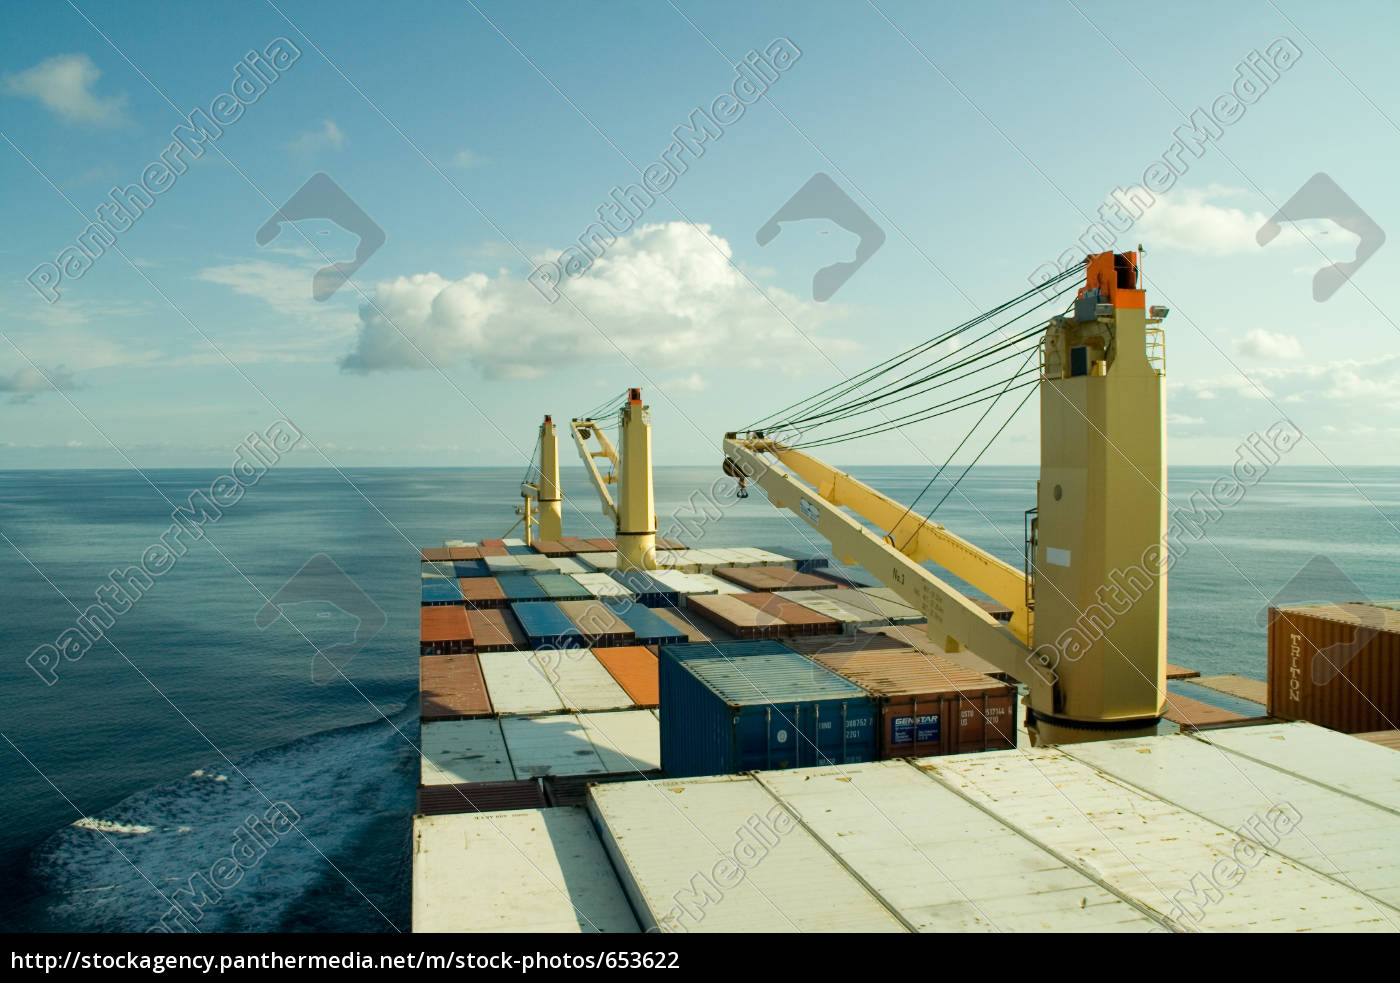 container, ship - 653622